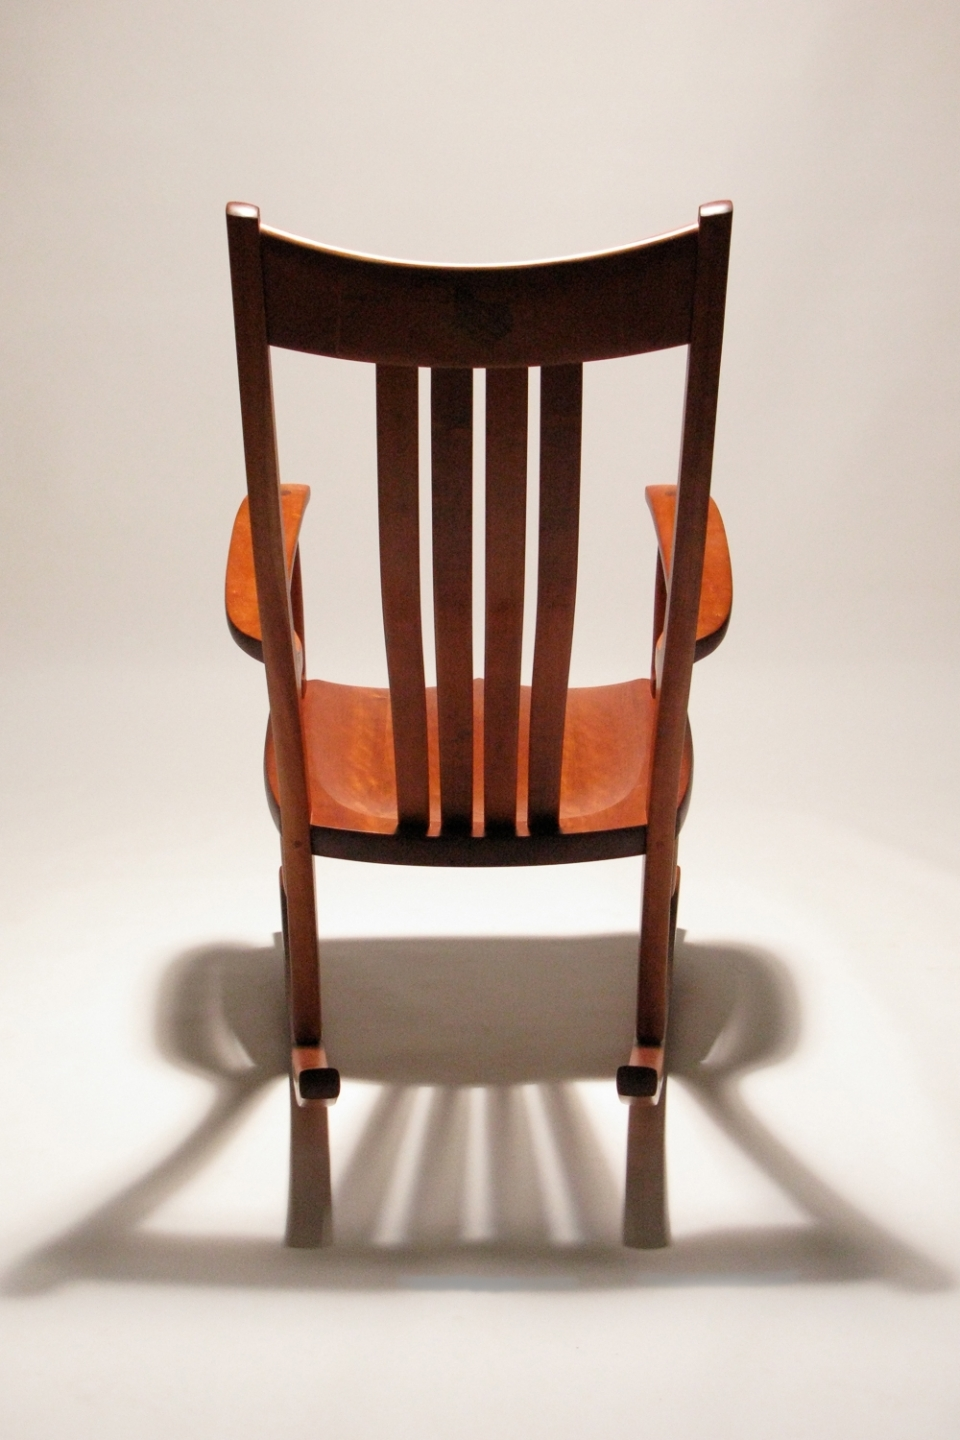 rocking chair back view, shadow